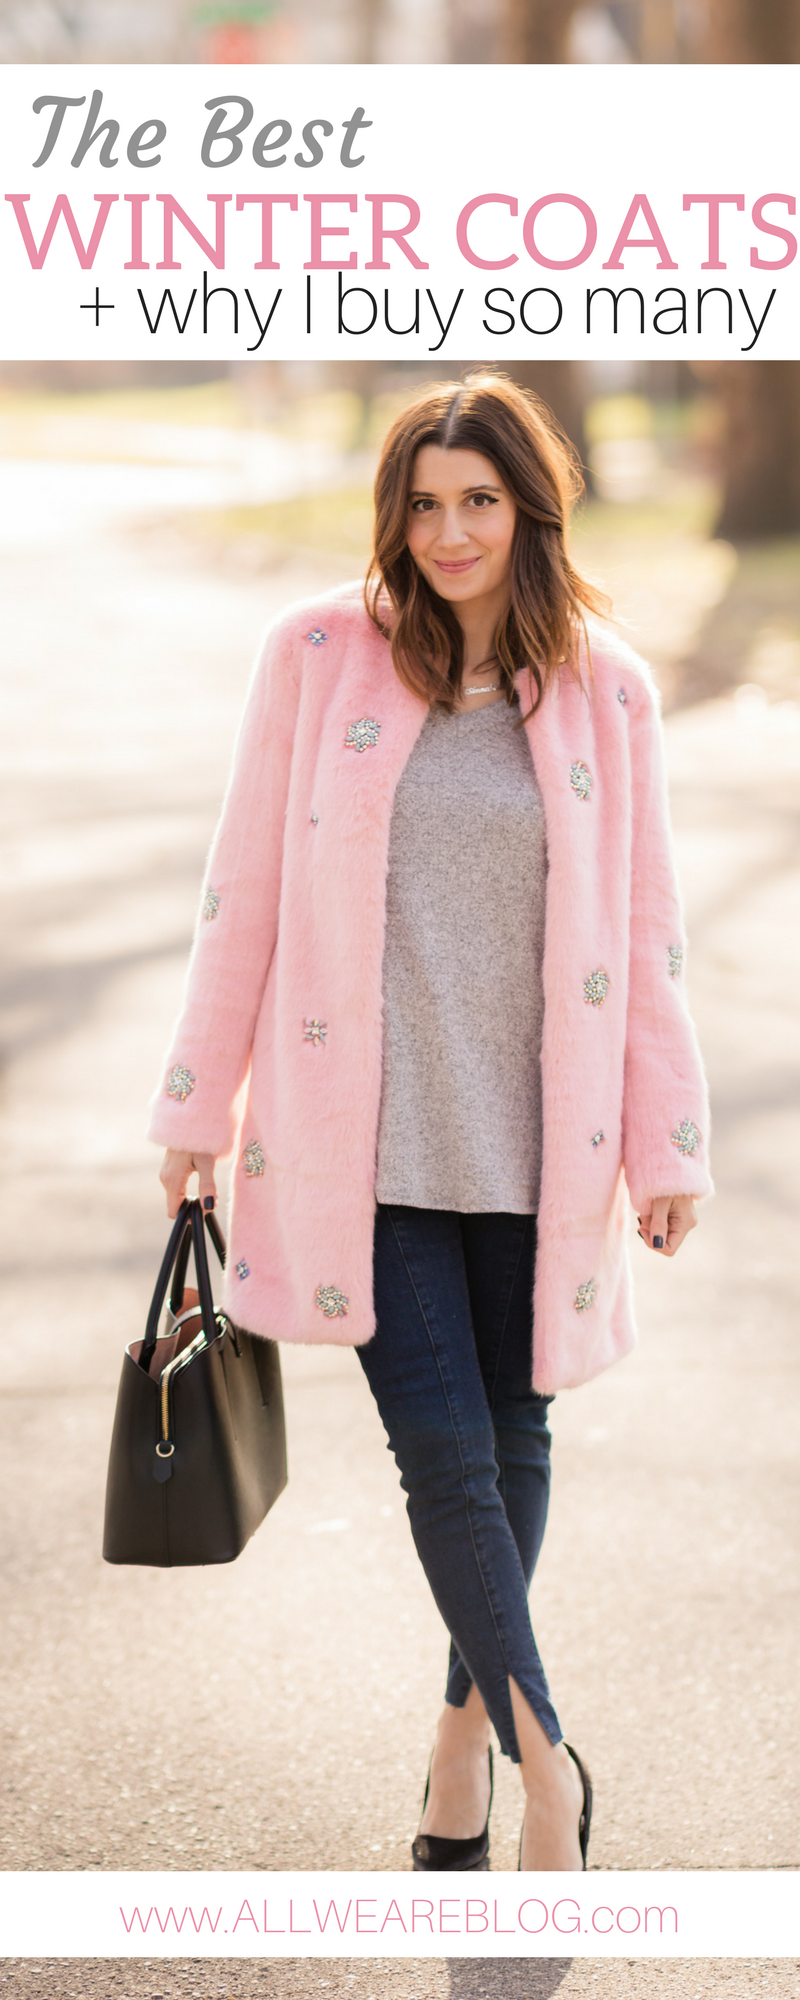 the best winter coats and why I buy so many